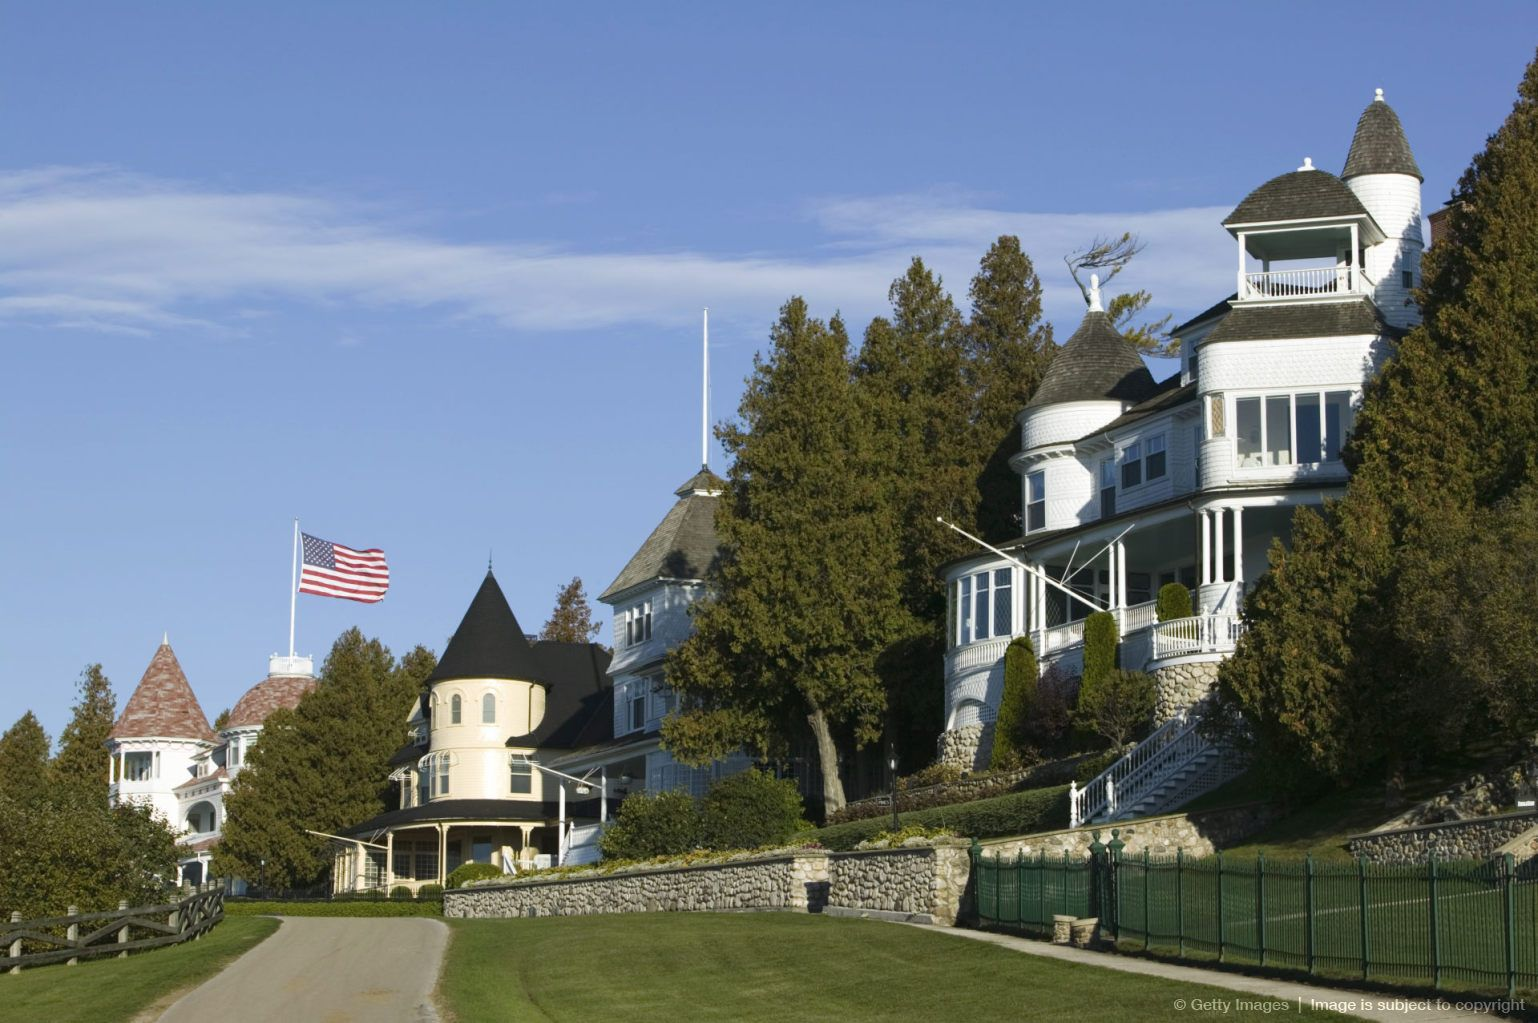 Image Detail For Houses Along West Bluff Road Mackinac Island Straits Of Mackinac Michigan Usa Mackinac Island Places To Travel Beautiful Home Gardens